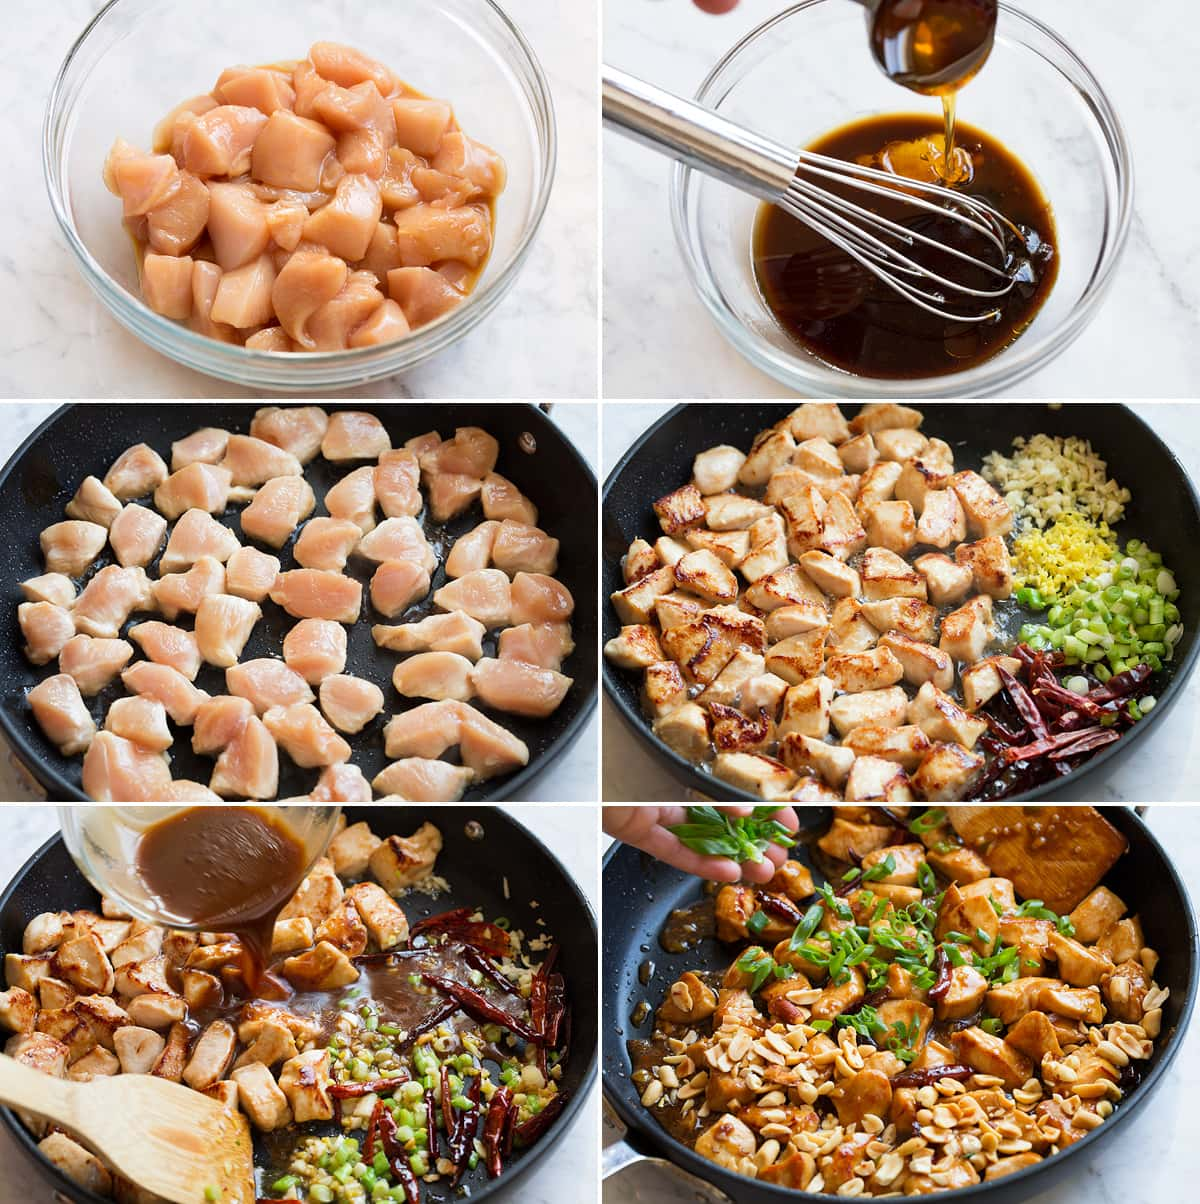 Collage of six images showing how to make Kung Pao sauce and cook thicken in skillet, then coat chicken and sauteed vegetables in skillet with sauce.